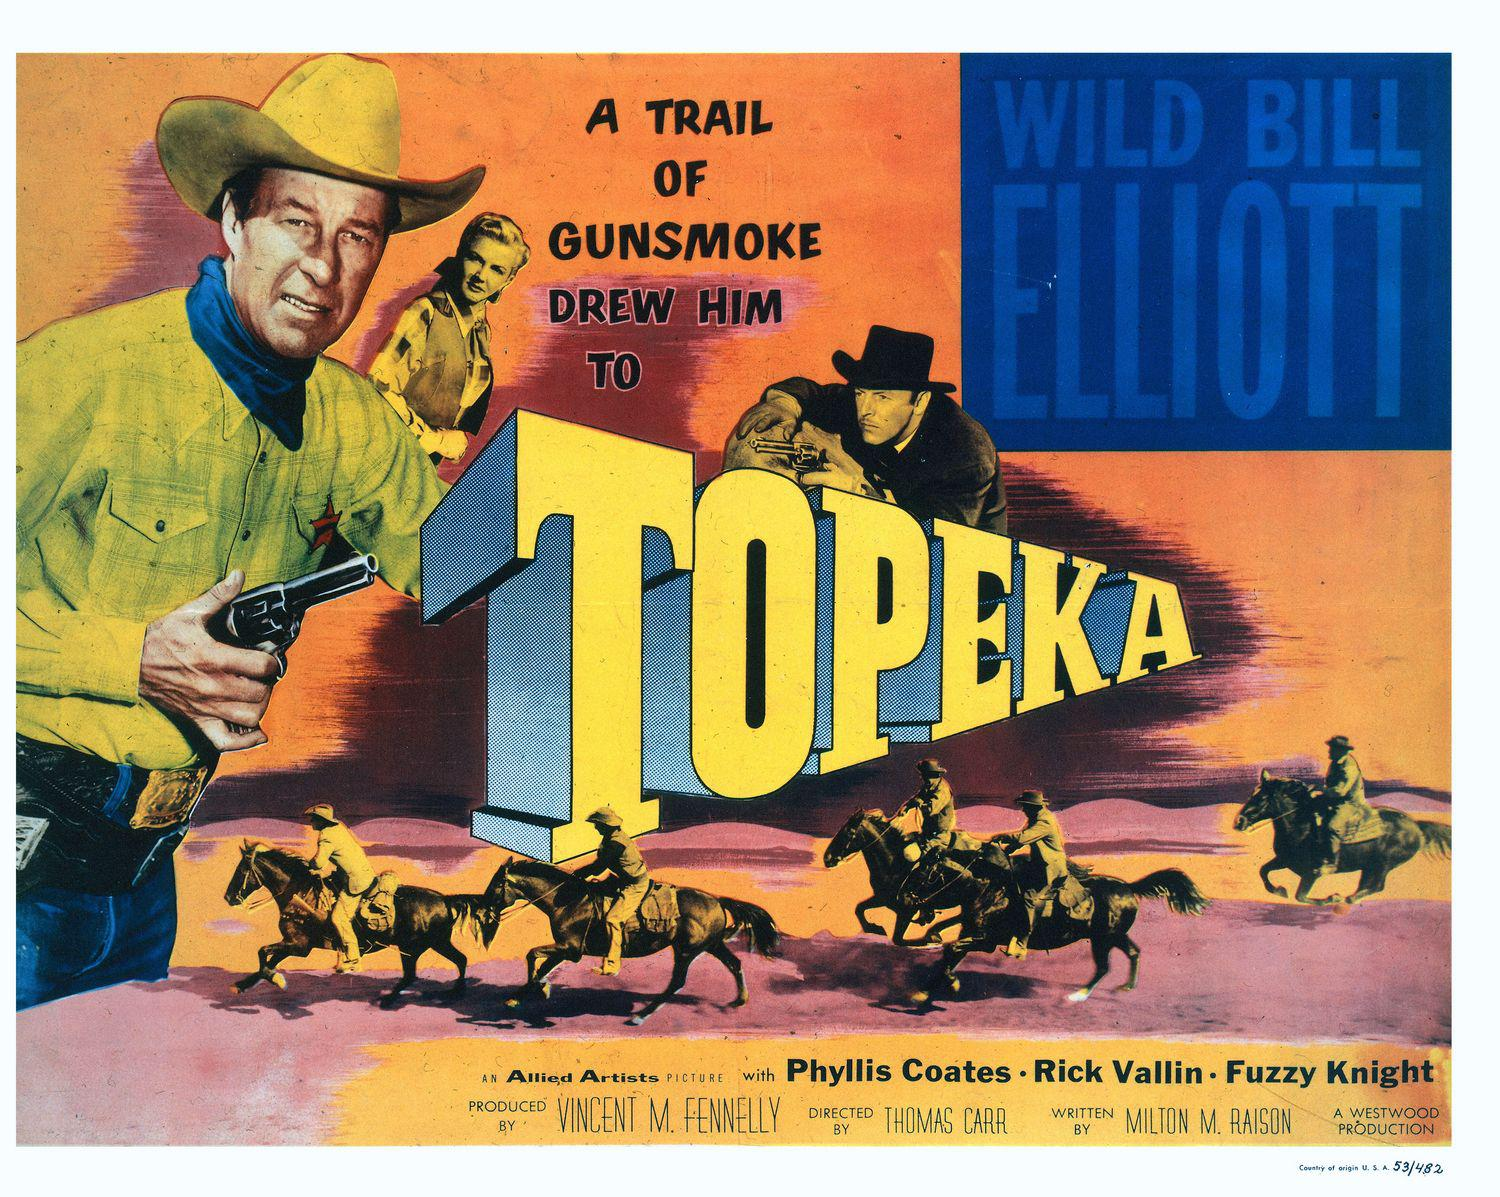 Topeka - a trail of gunsmoke - Drew Him - Phyllis Coates - Rick Vallin - Fuzzy Knight